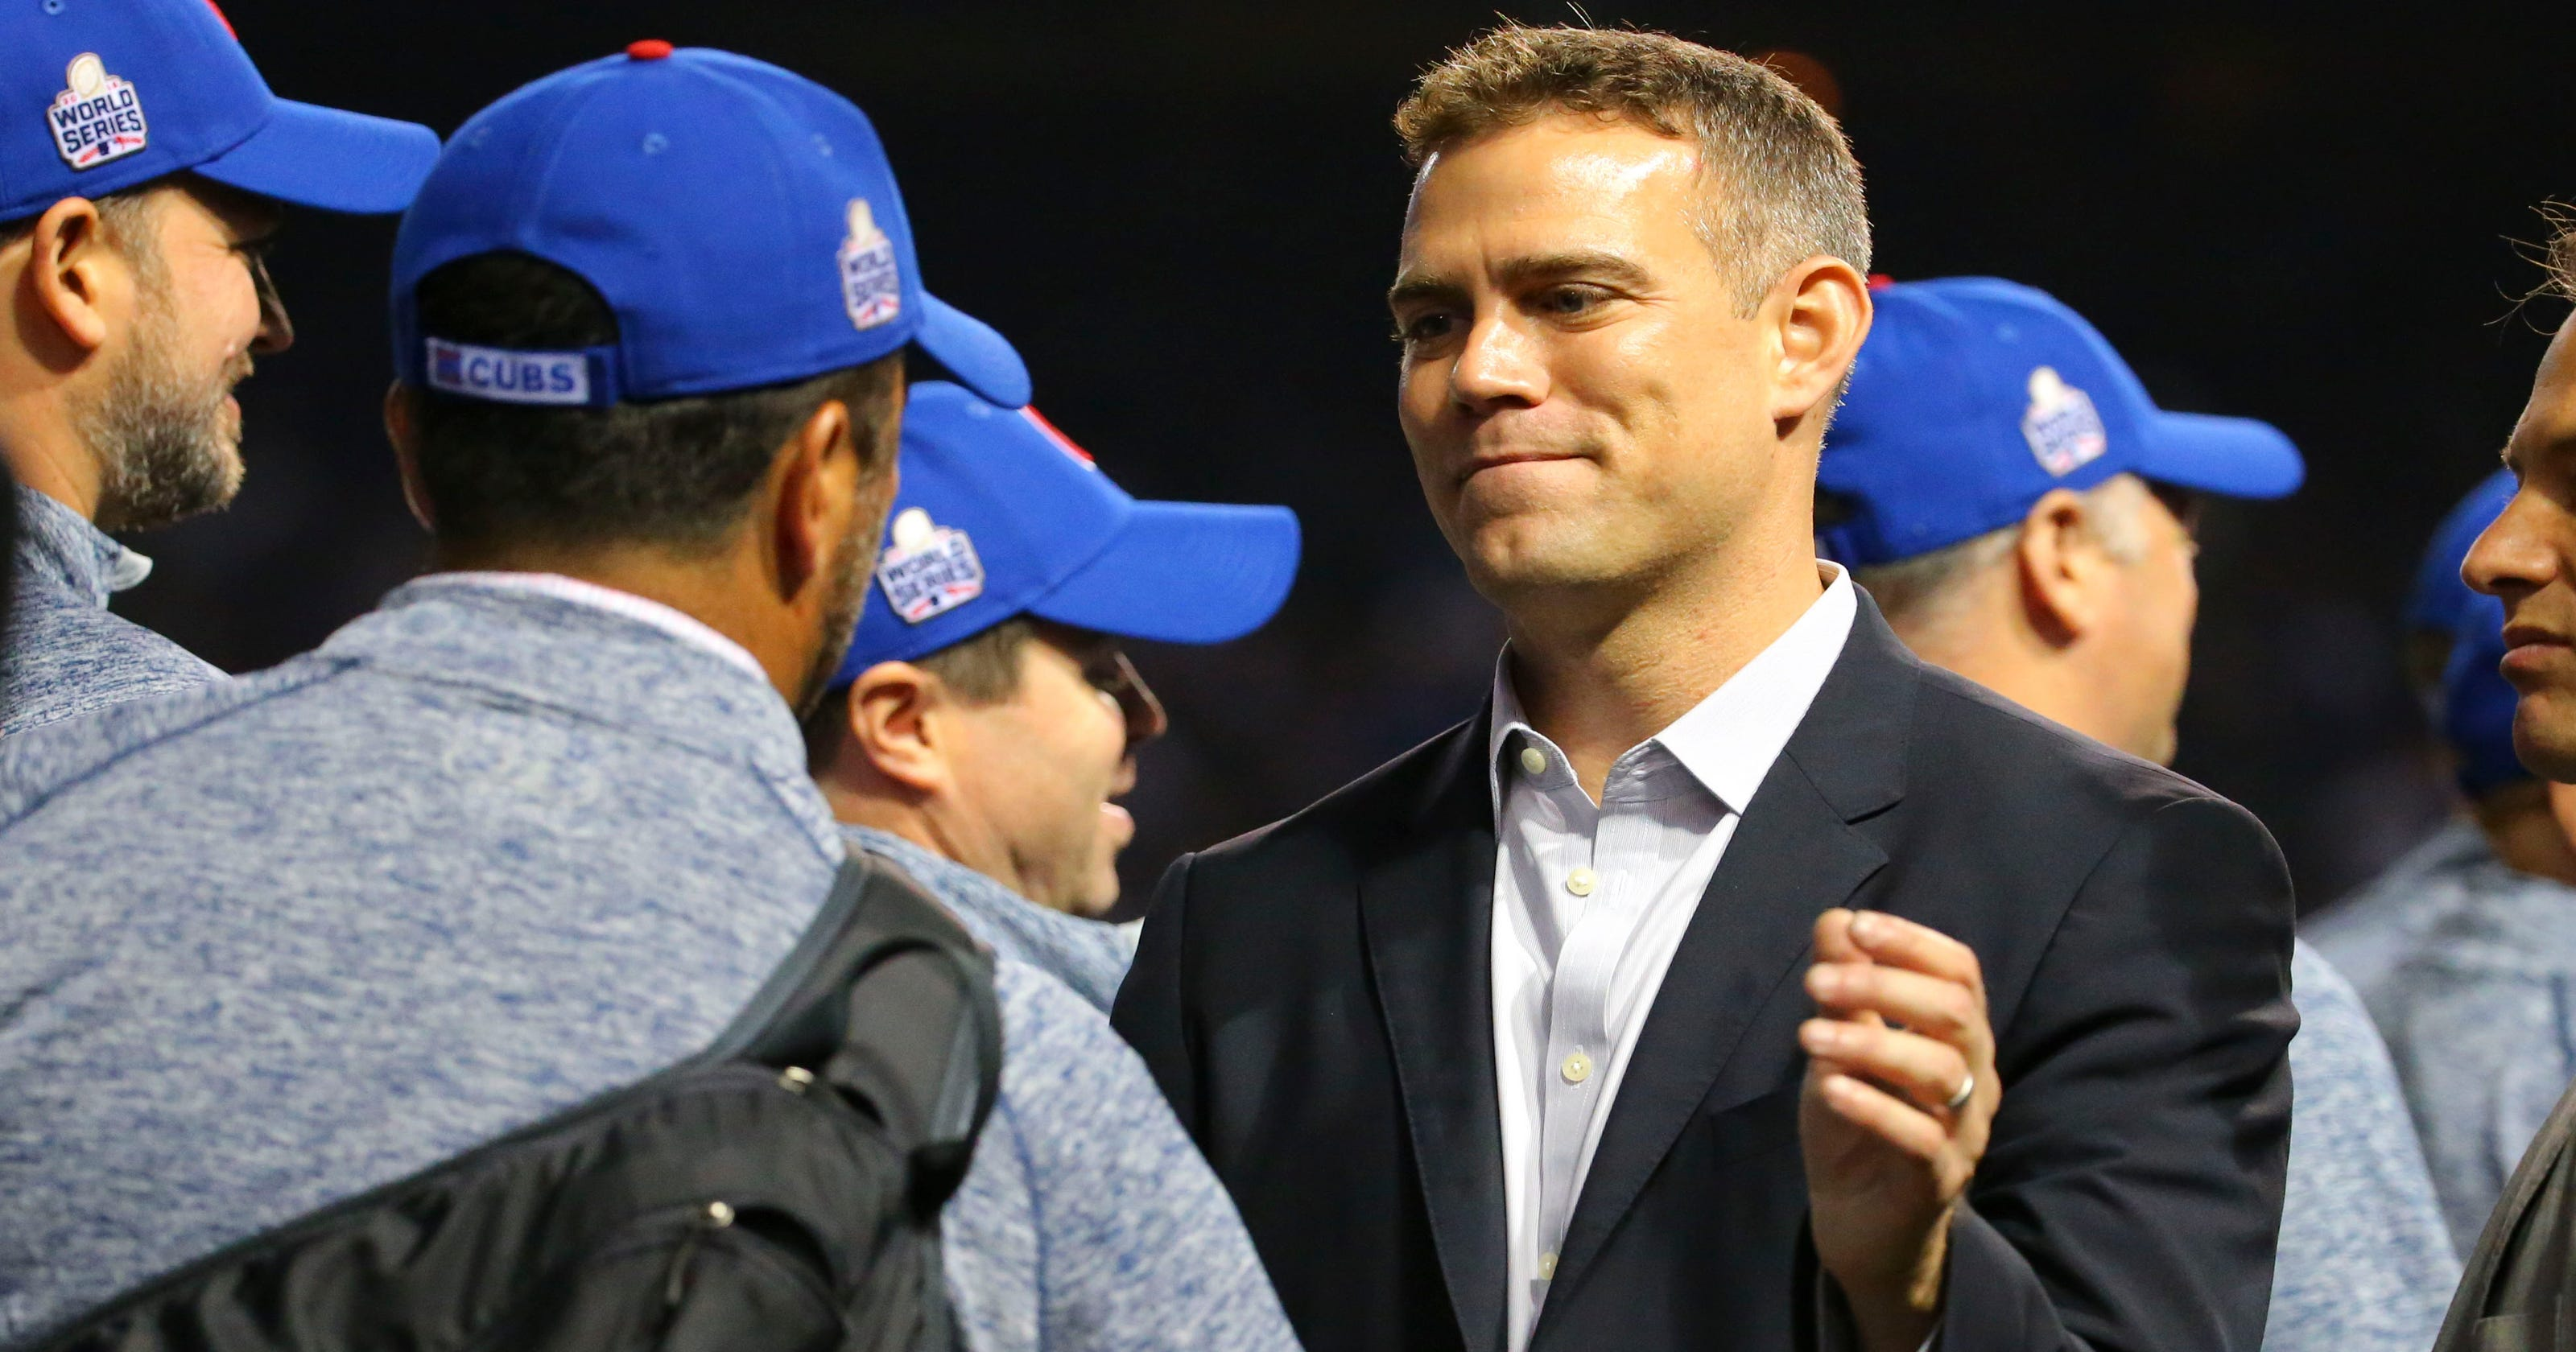 975f7c9fd8c Theo Epstein named Sporting News Major League Baseball Executive of the Year